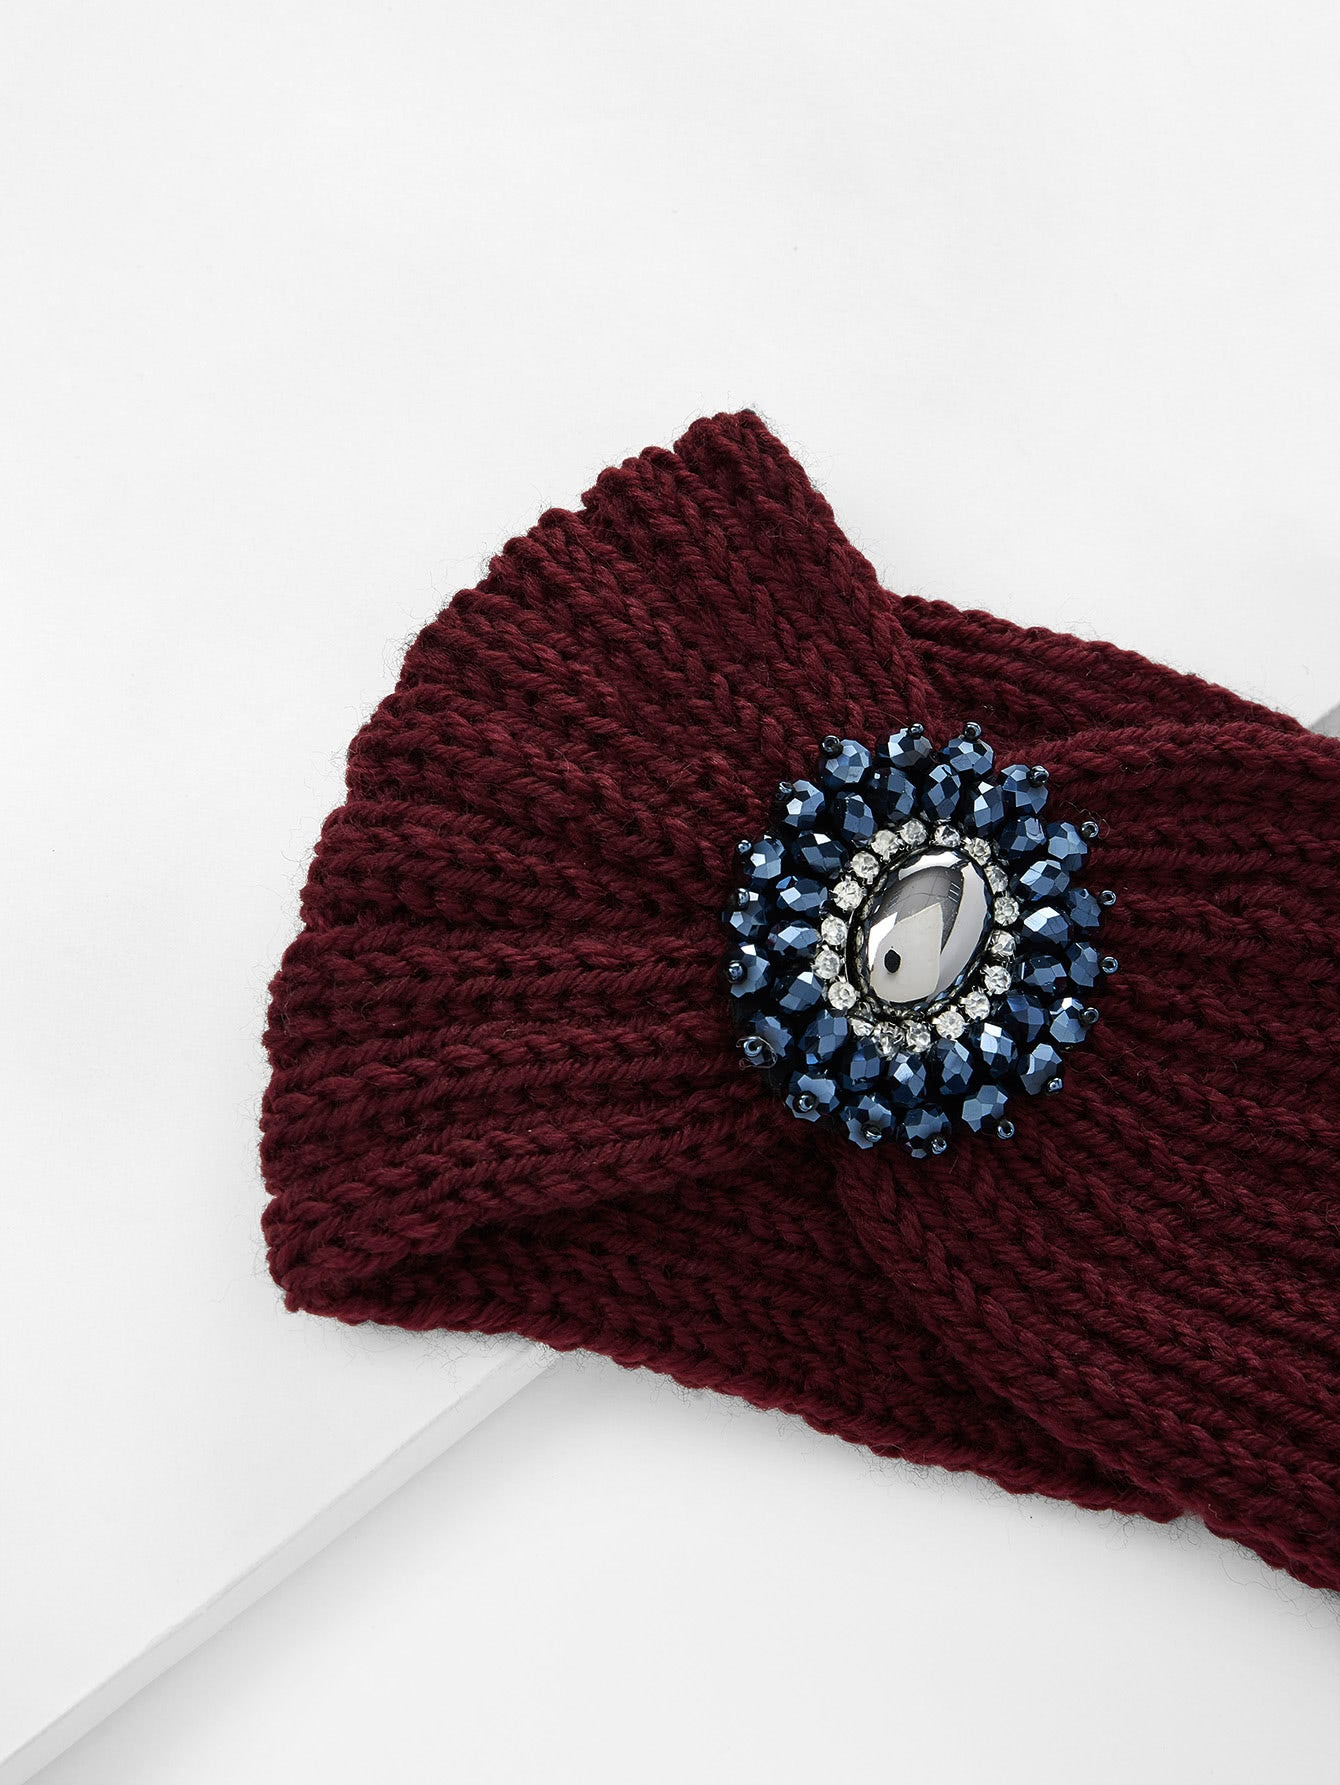 The Bejeweled Turban